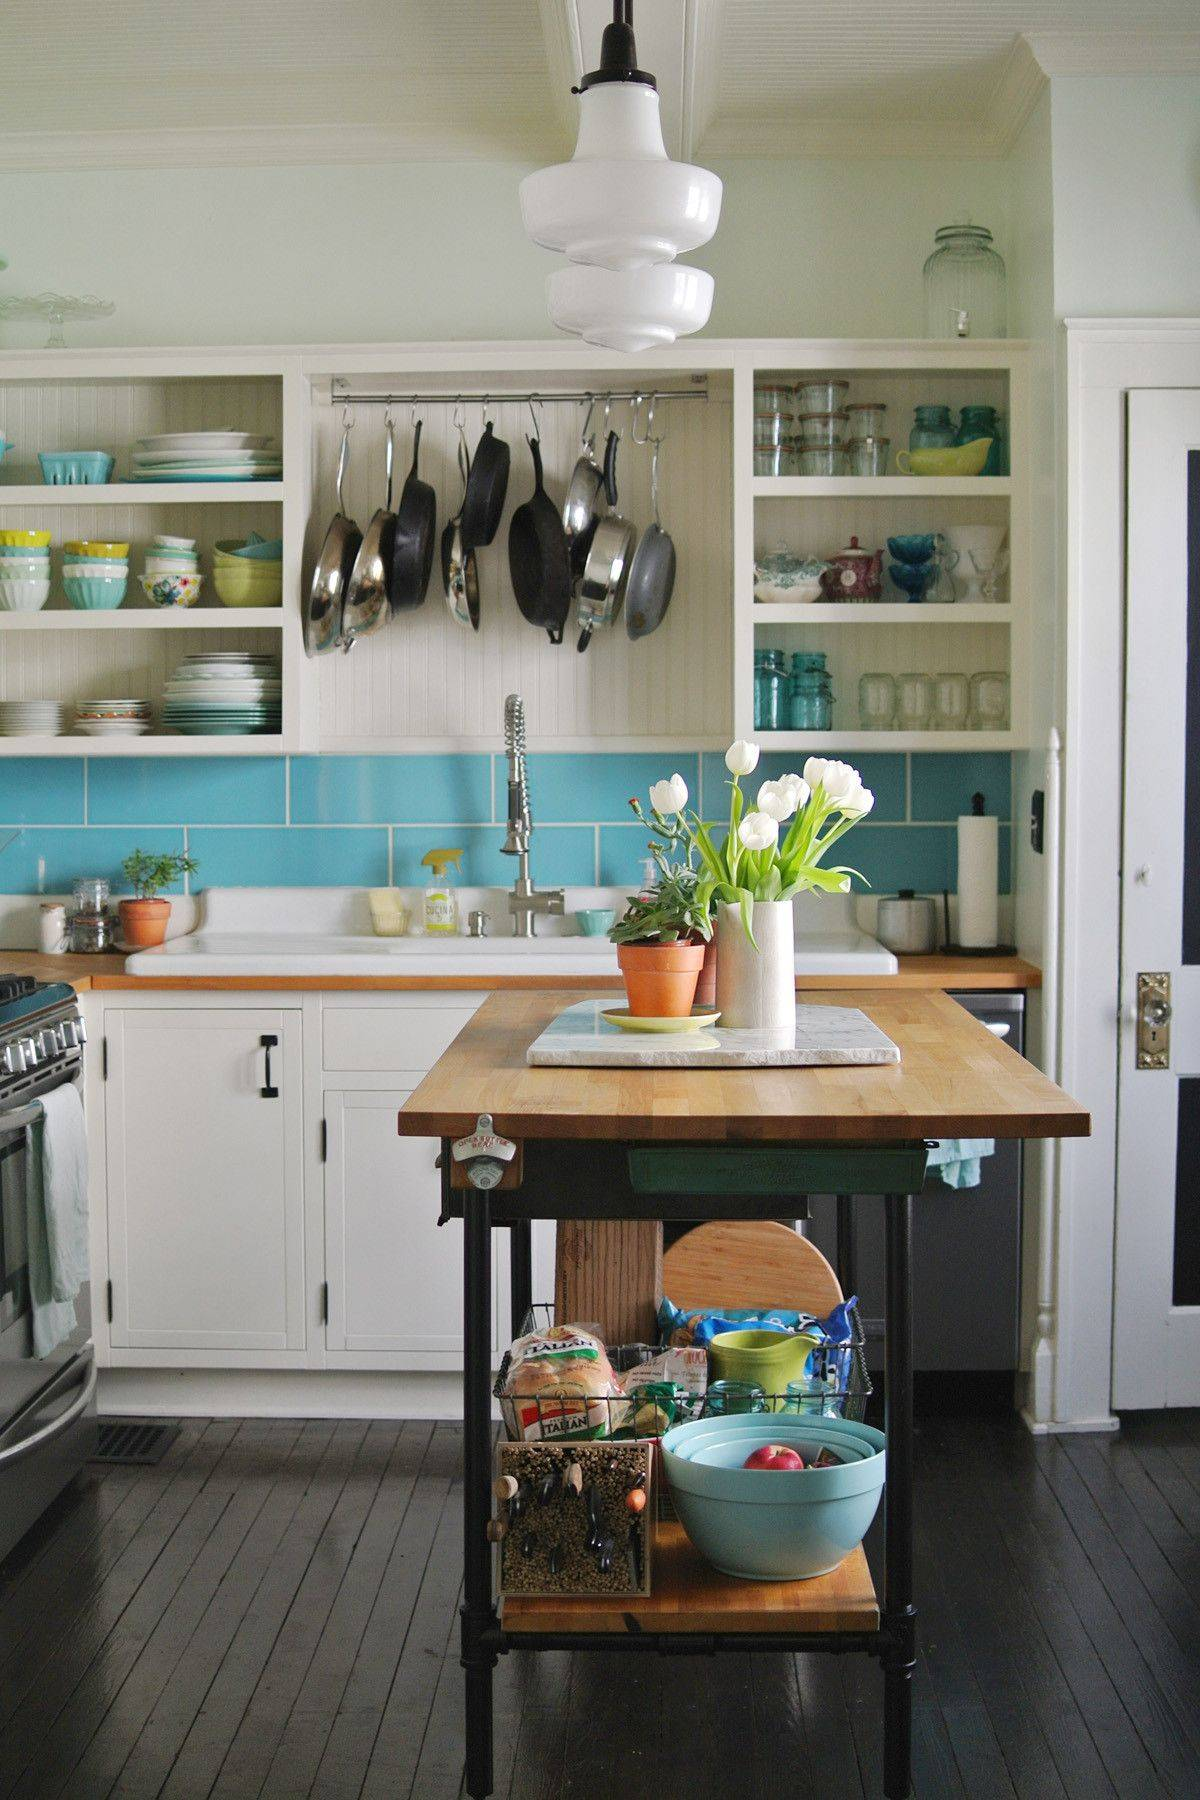 Finding-the-space-for-utility-rail-between-the-many-open-shelves-in-the-kitchen-50084